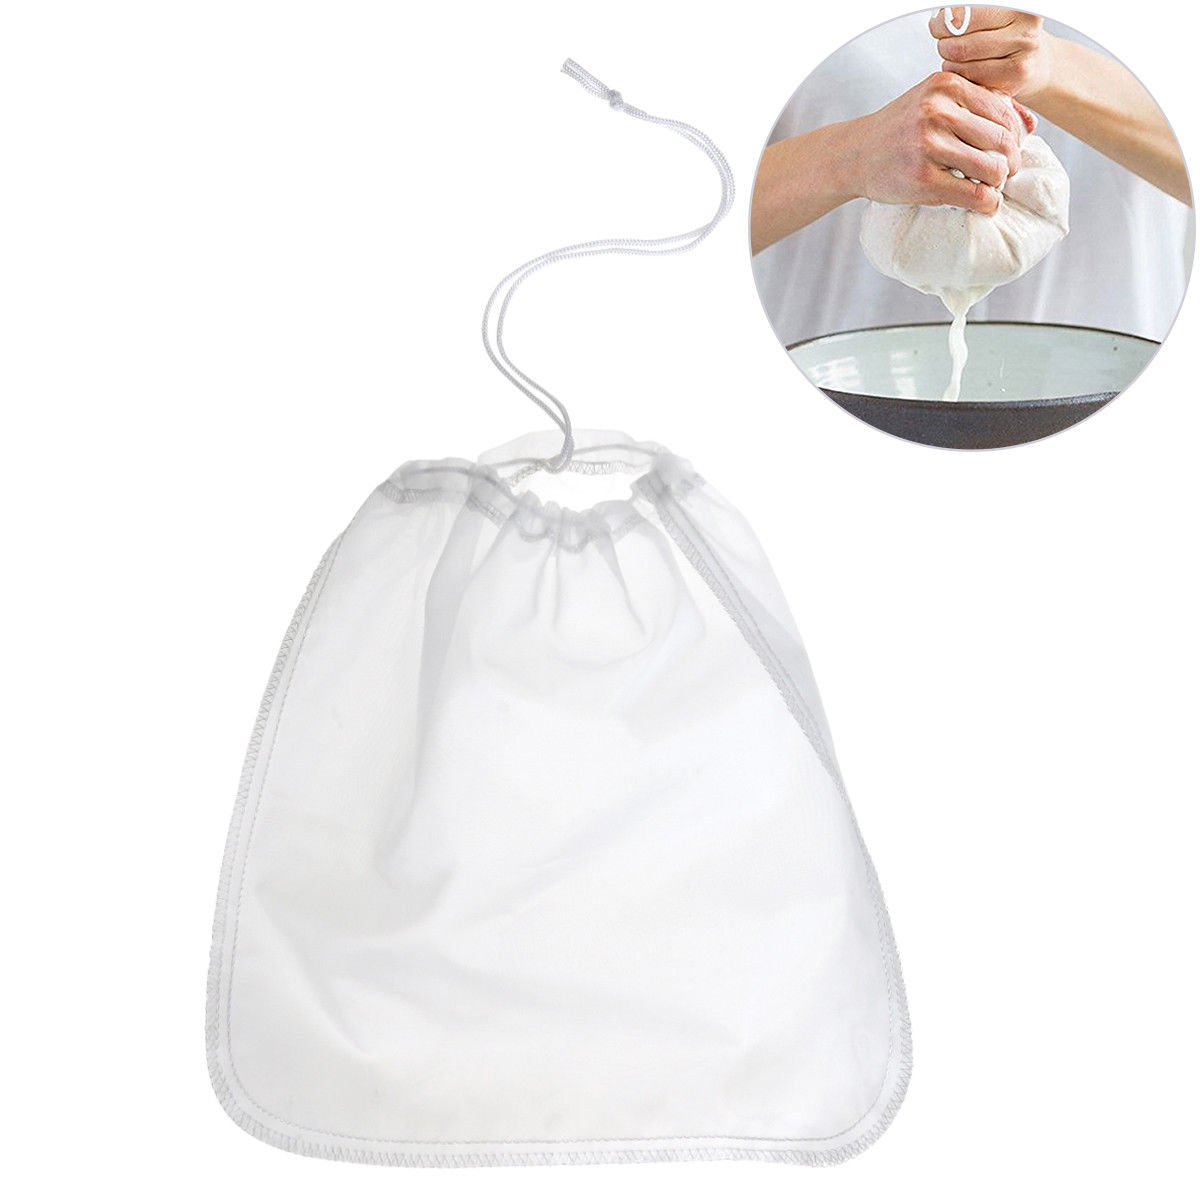 Nut Milk Bag Reusable Almond Milk Bags Food Grade Fine Nylon Mesh Food Strainer & Cheese Maker Coffee & Tea Filter